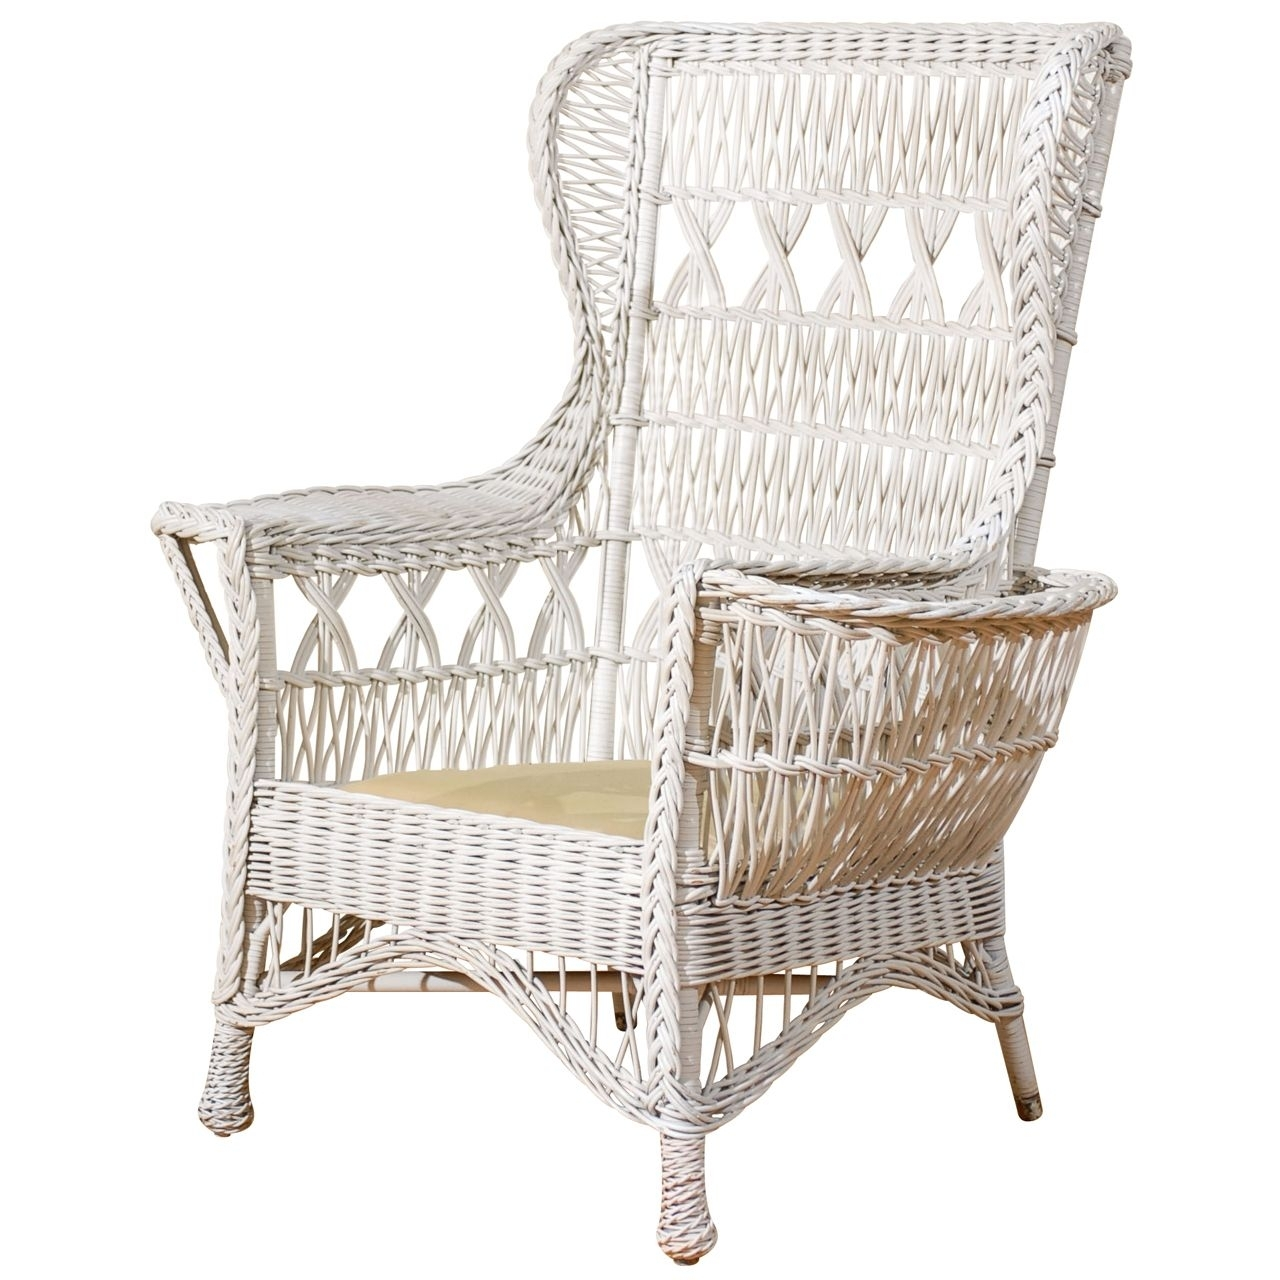 Antique American Wicker Wing Chair With Magazine Pocket | Wicker Throughout Wicker Rocking Chair With Magazine Holder (#1 of 15)